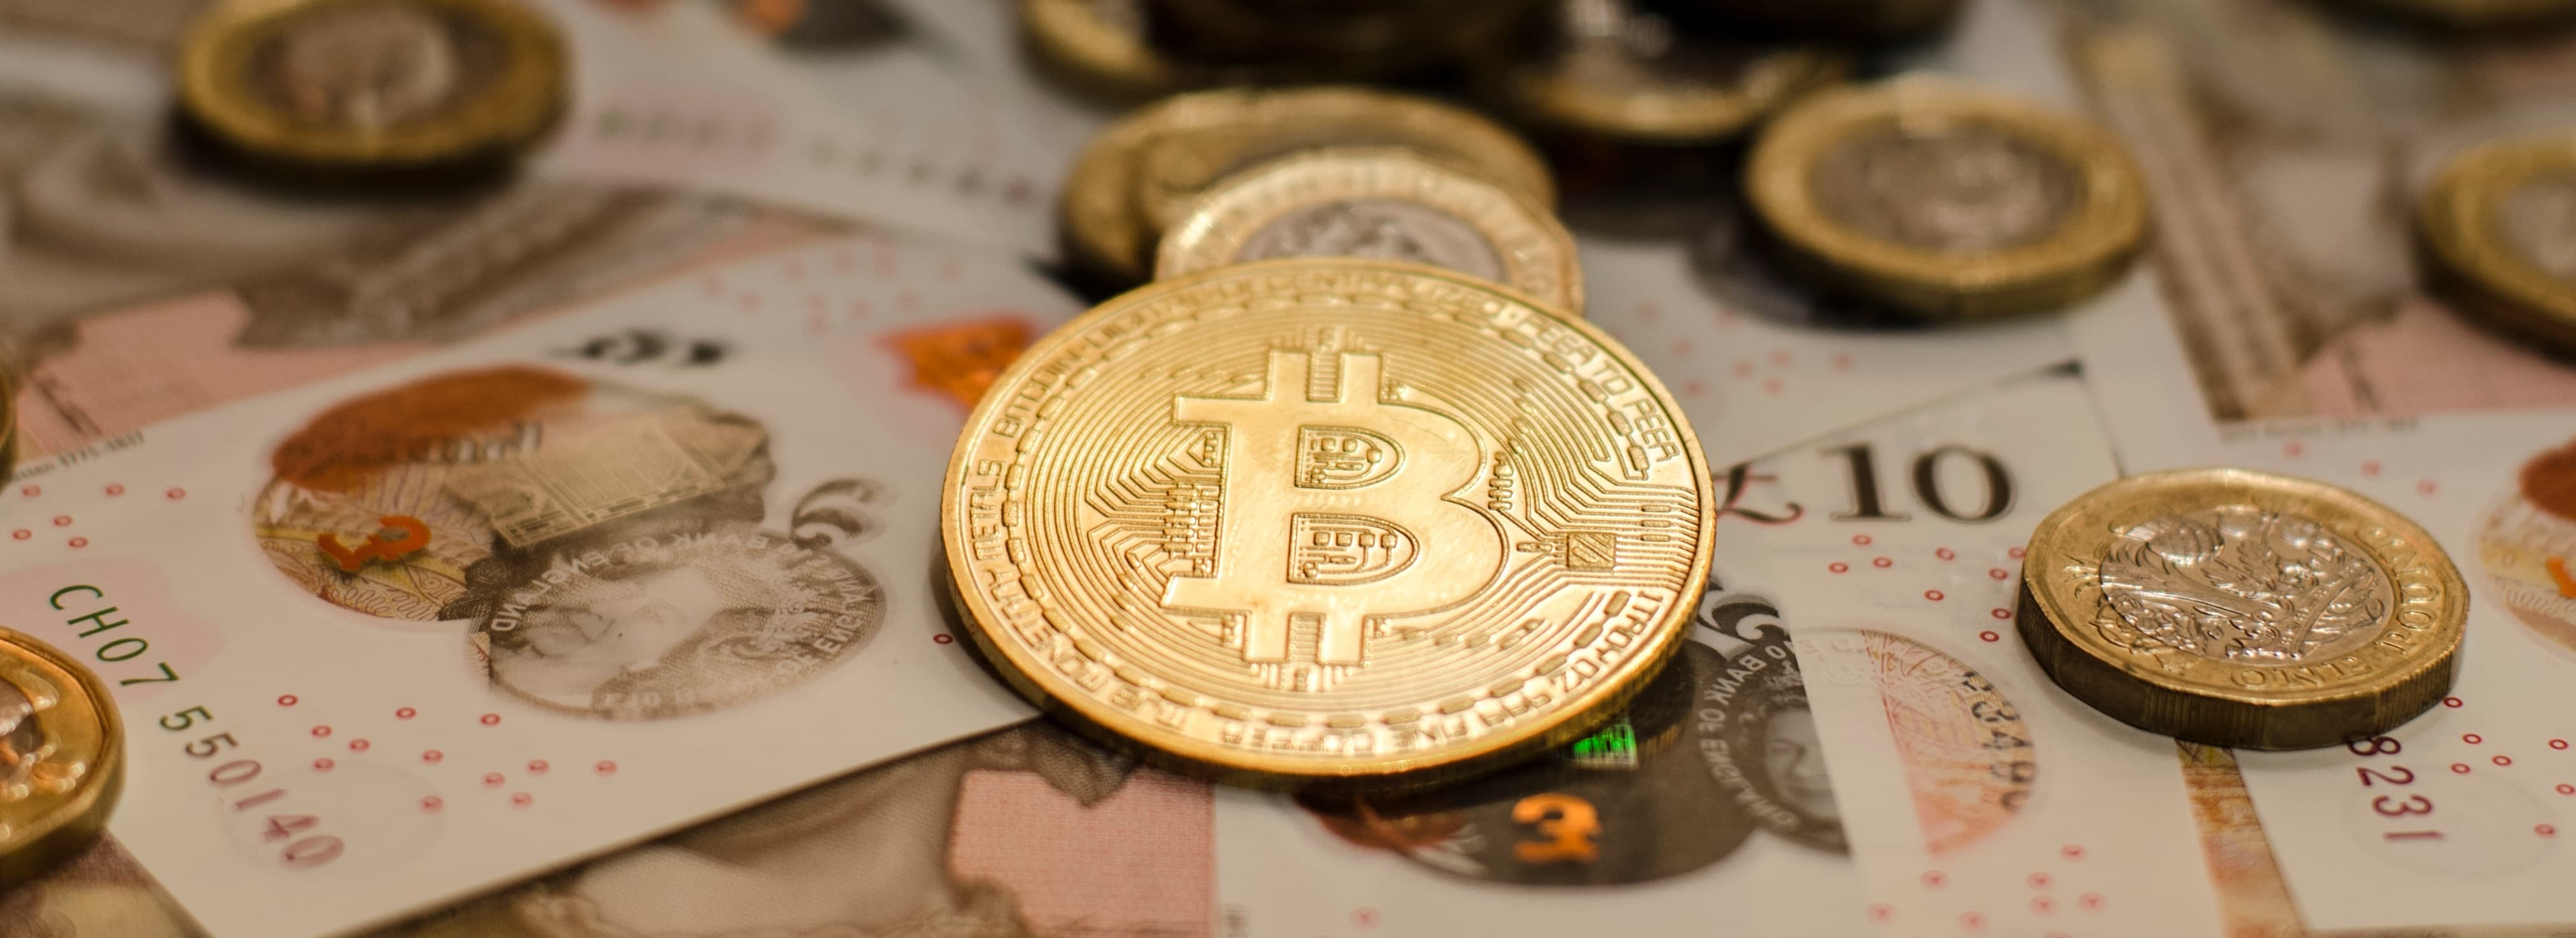 BITSTAMP ADDS GBP AS A FUNDING OPTION